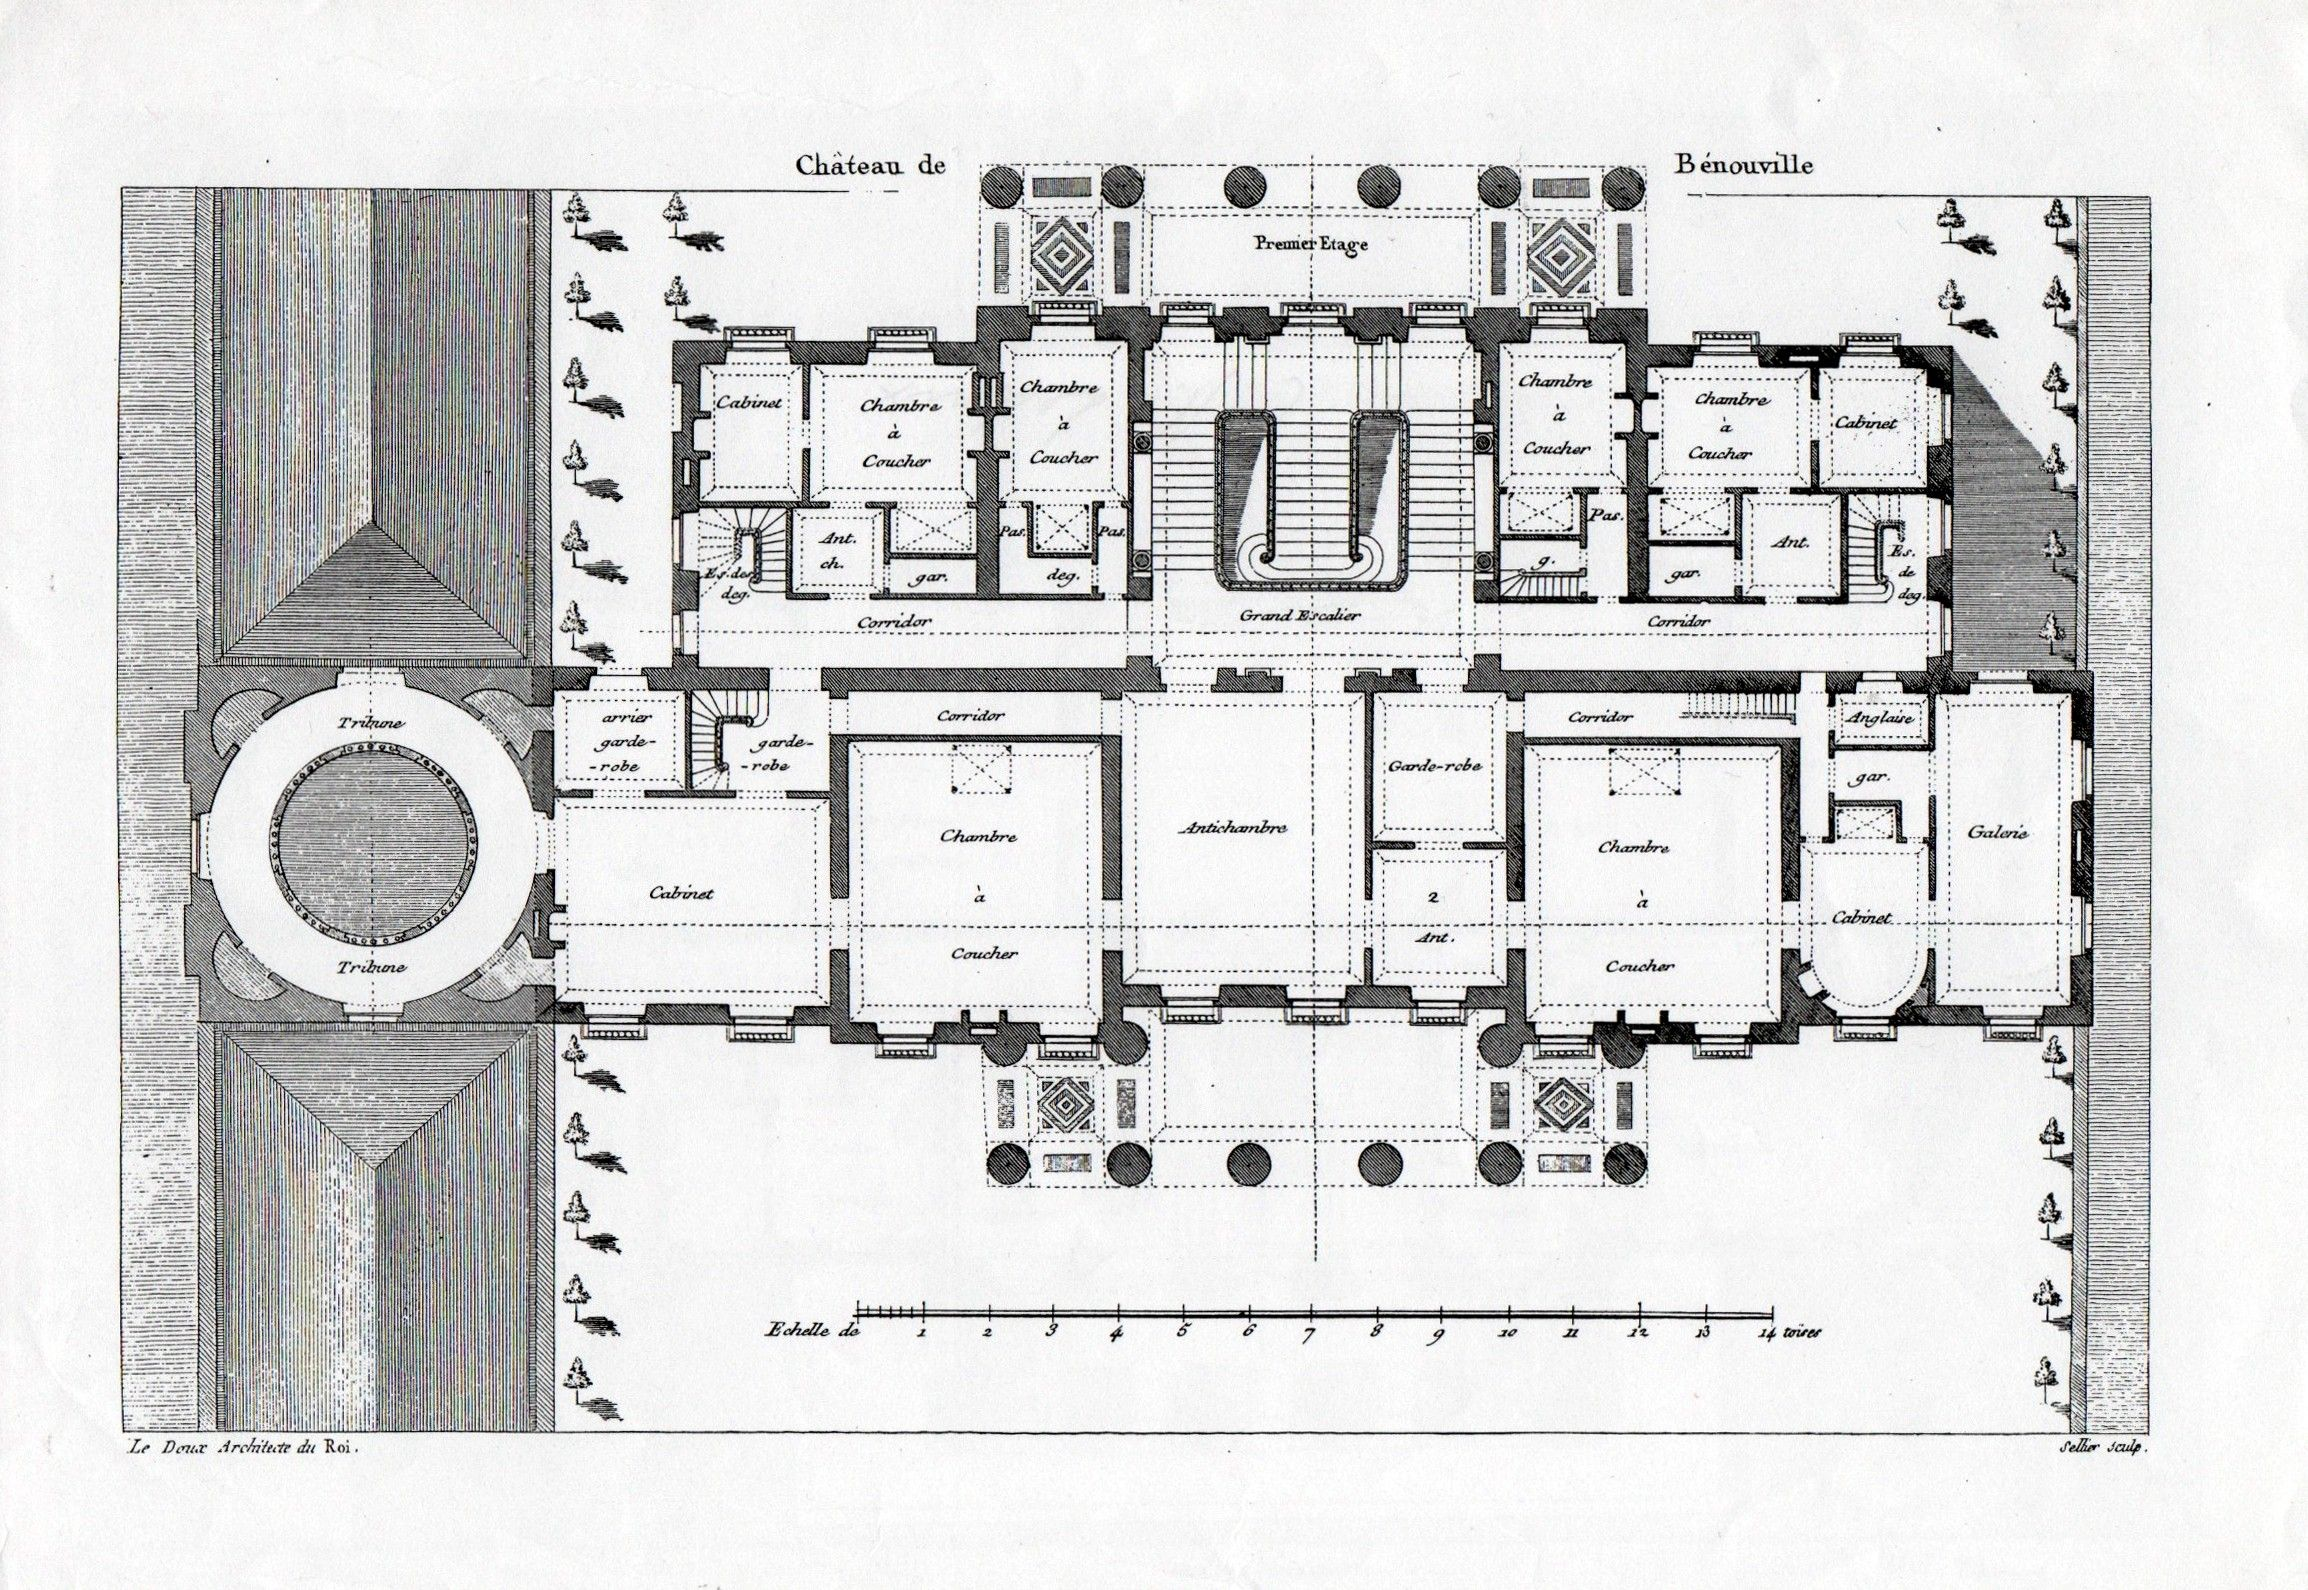 The first (principal bedroom) floor plan of the